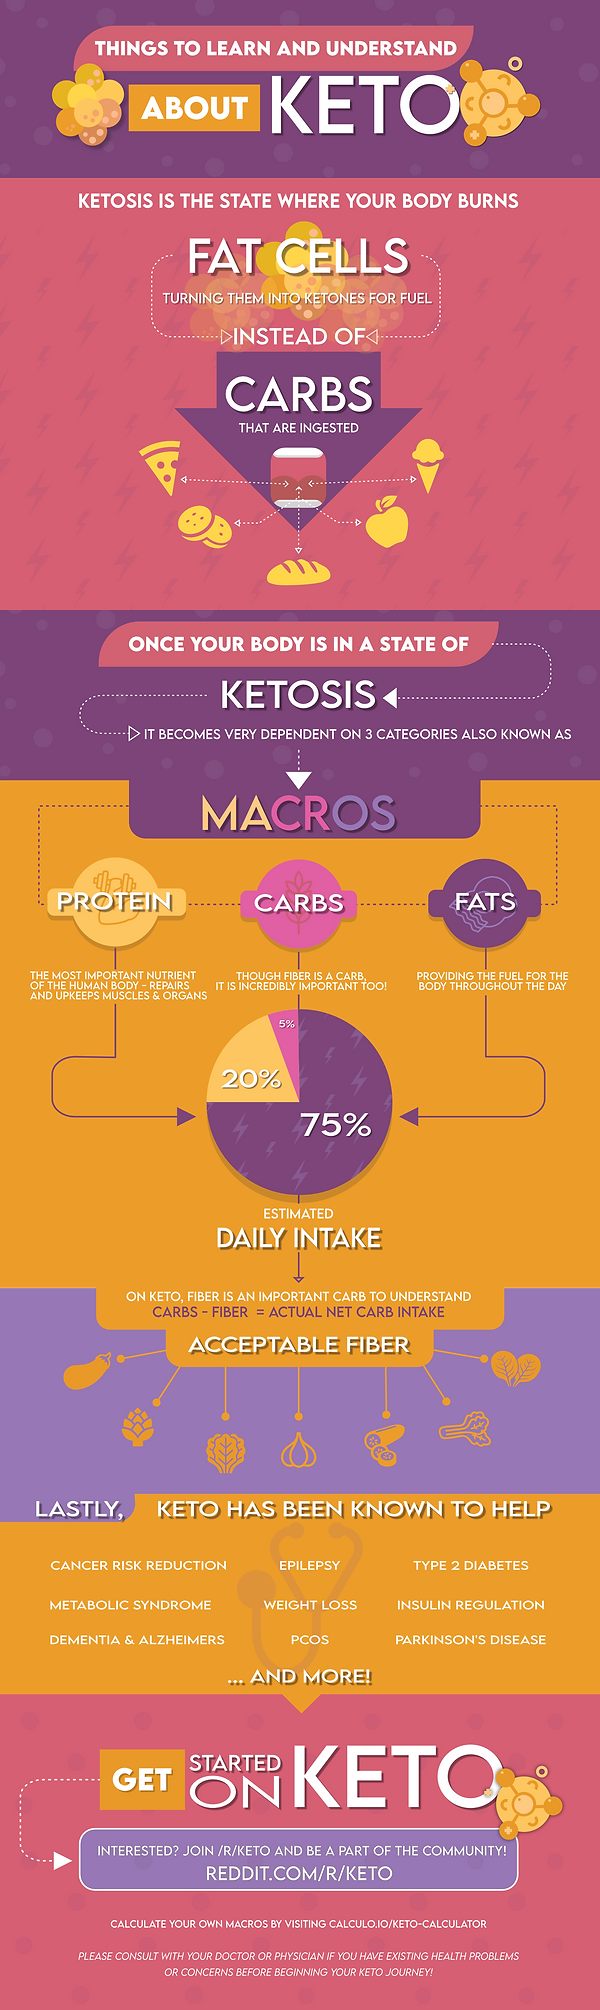 keto infographic-cropped.png